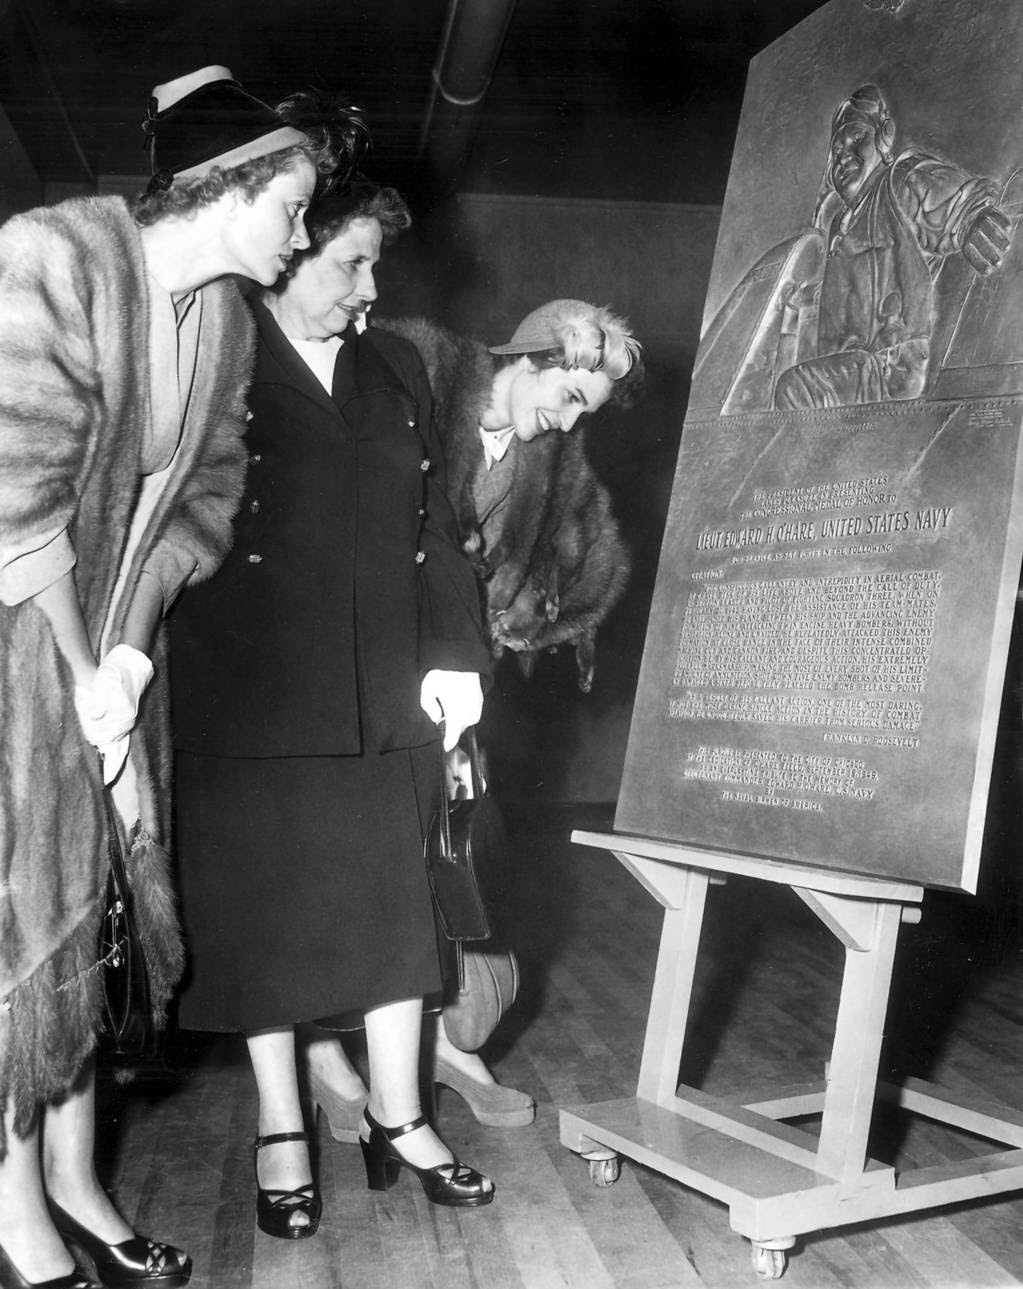 Mrs. Selma O'Hare, middle, and her daughters Mrs. Walter Palmer, left, and Mrs. Philip Tovrea, right, read the inscription on the bronze plaque commemorating the heroism of their son and brother Edward